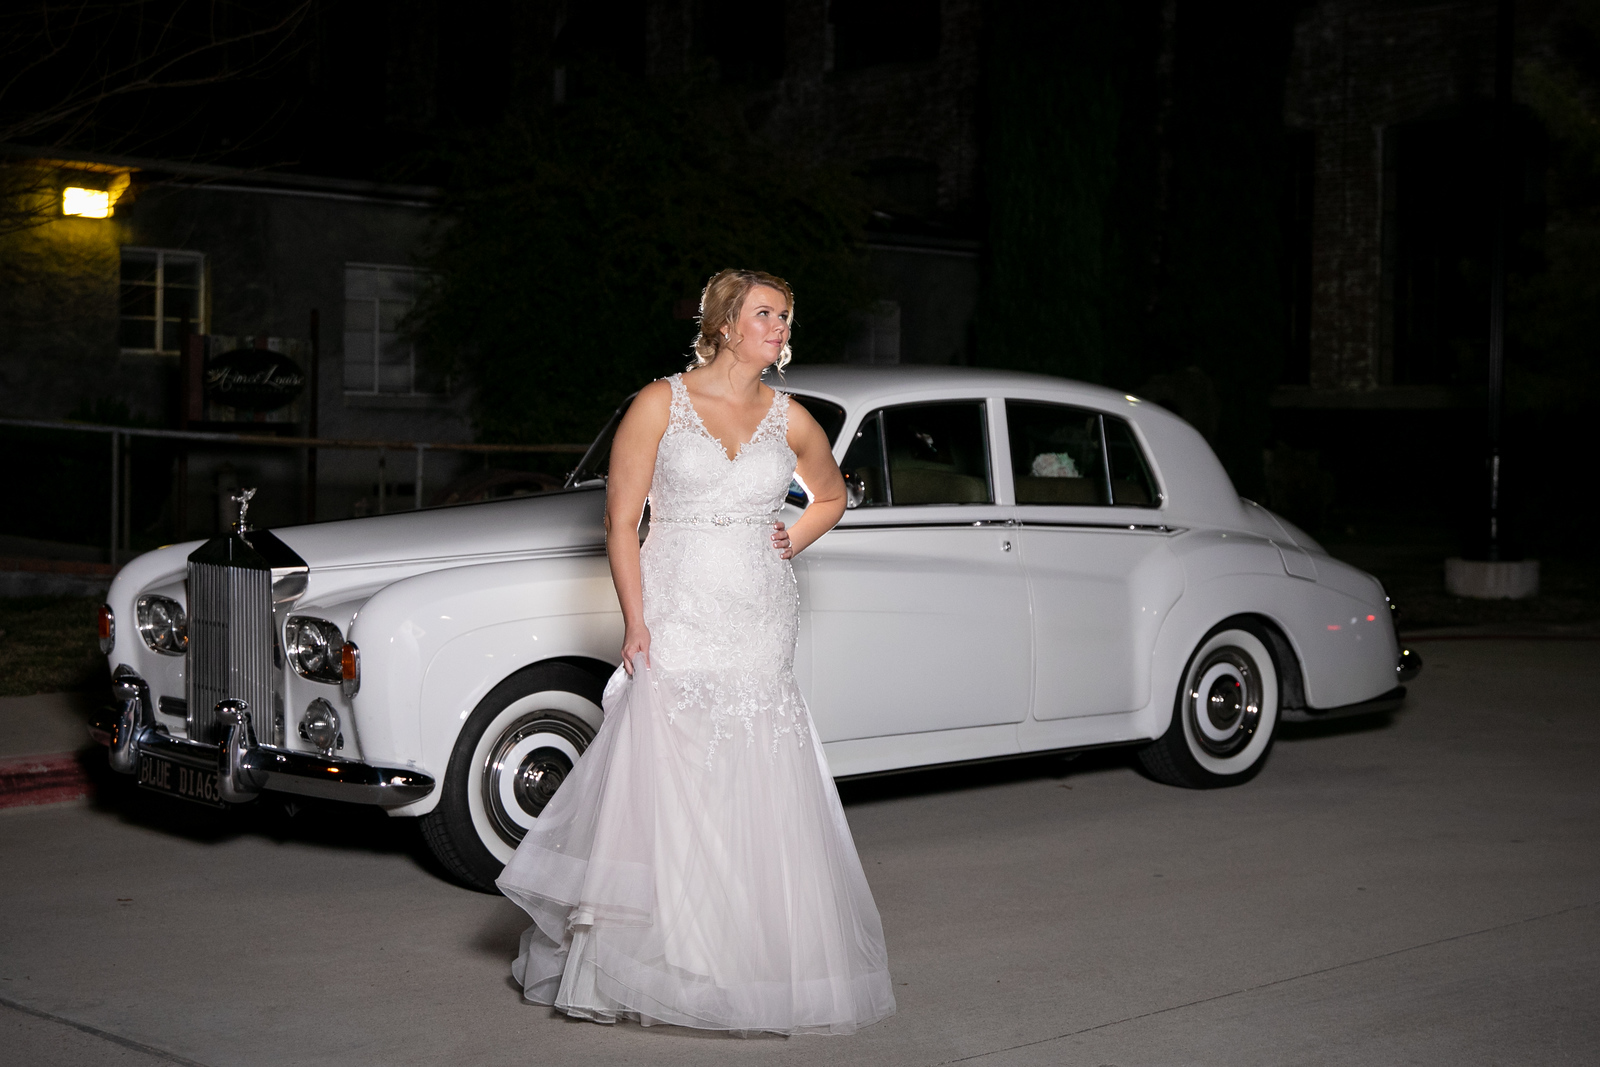 bride standing in front of a classic car outside her wedding venue on her wedding night